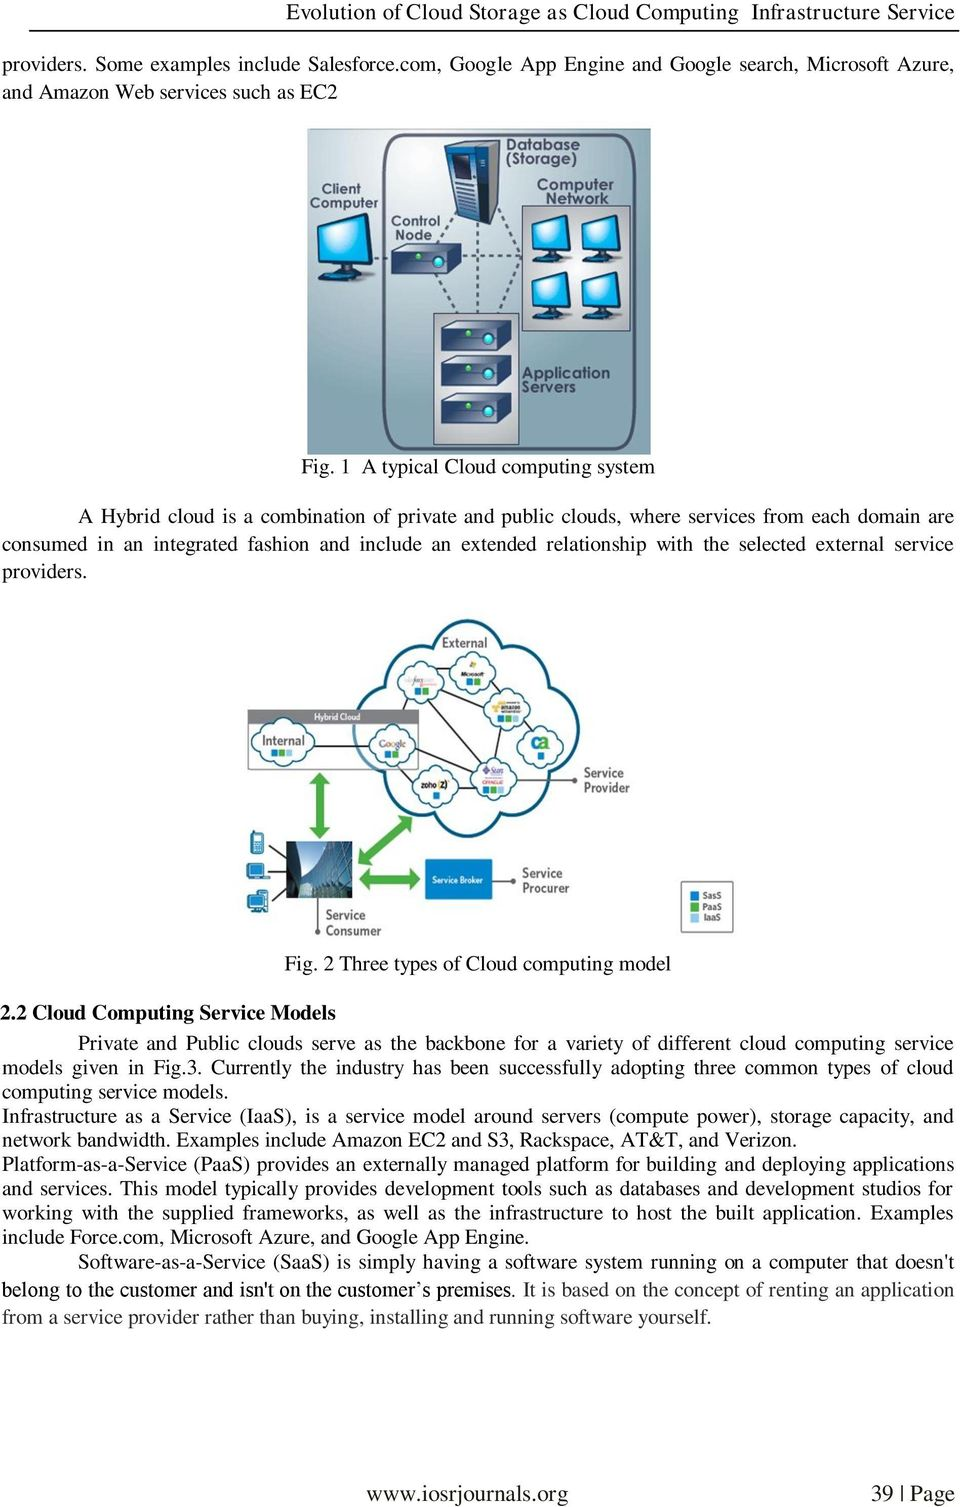 relationship with the selected external service providers. Fig. 2 Three types of Cloud computing model 2.